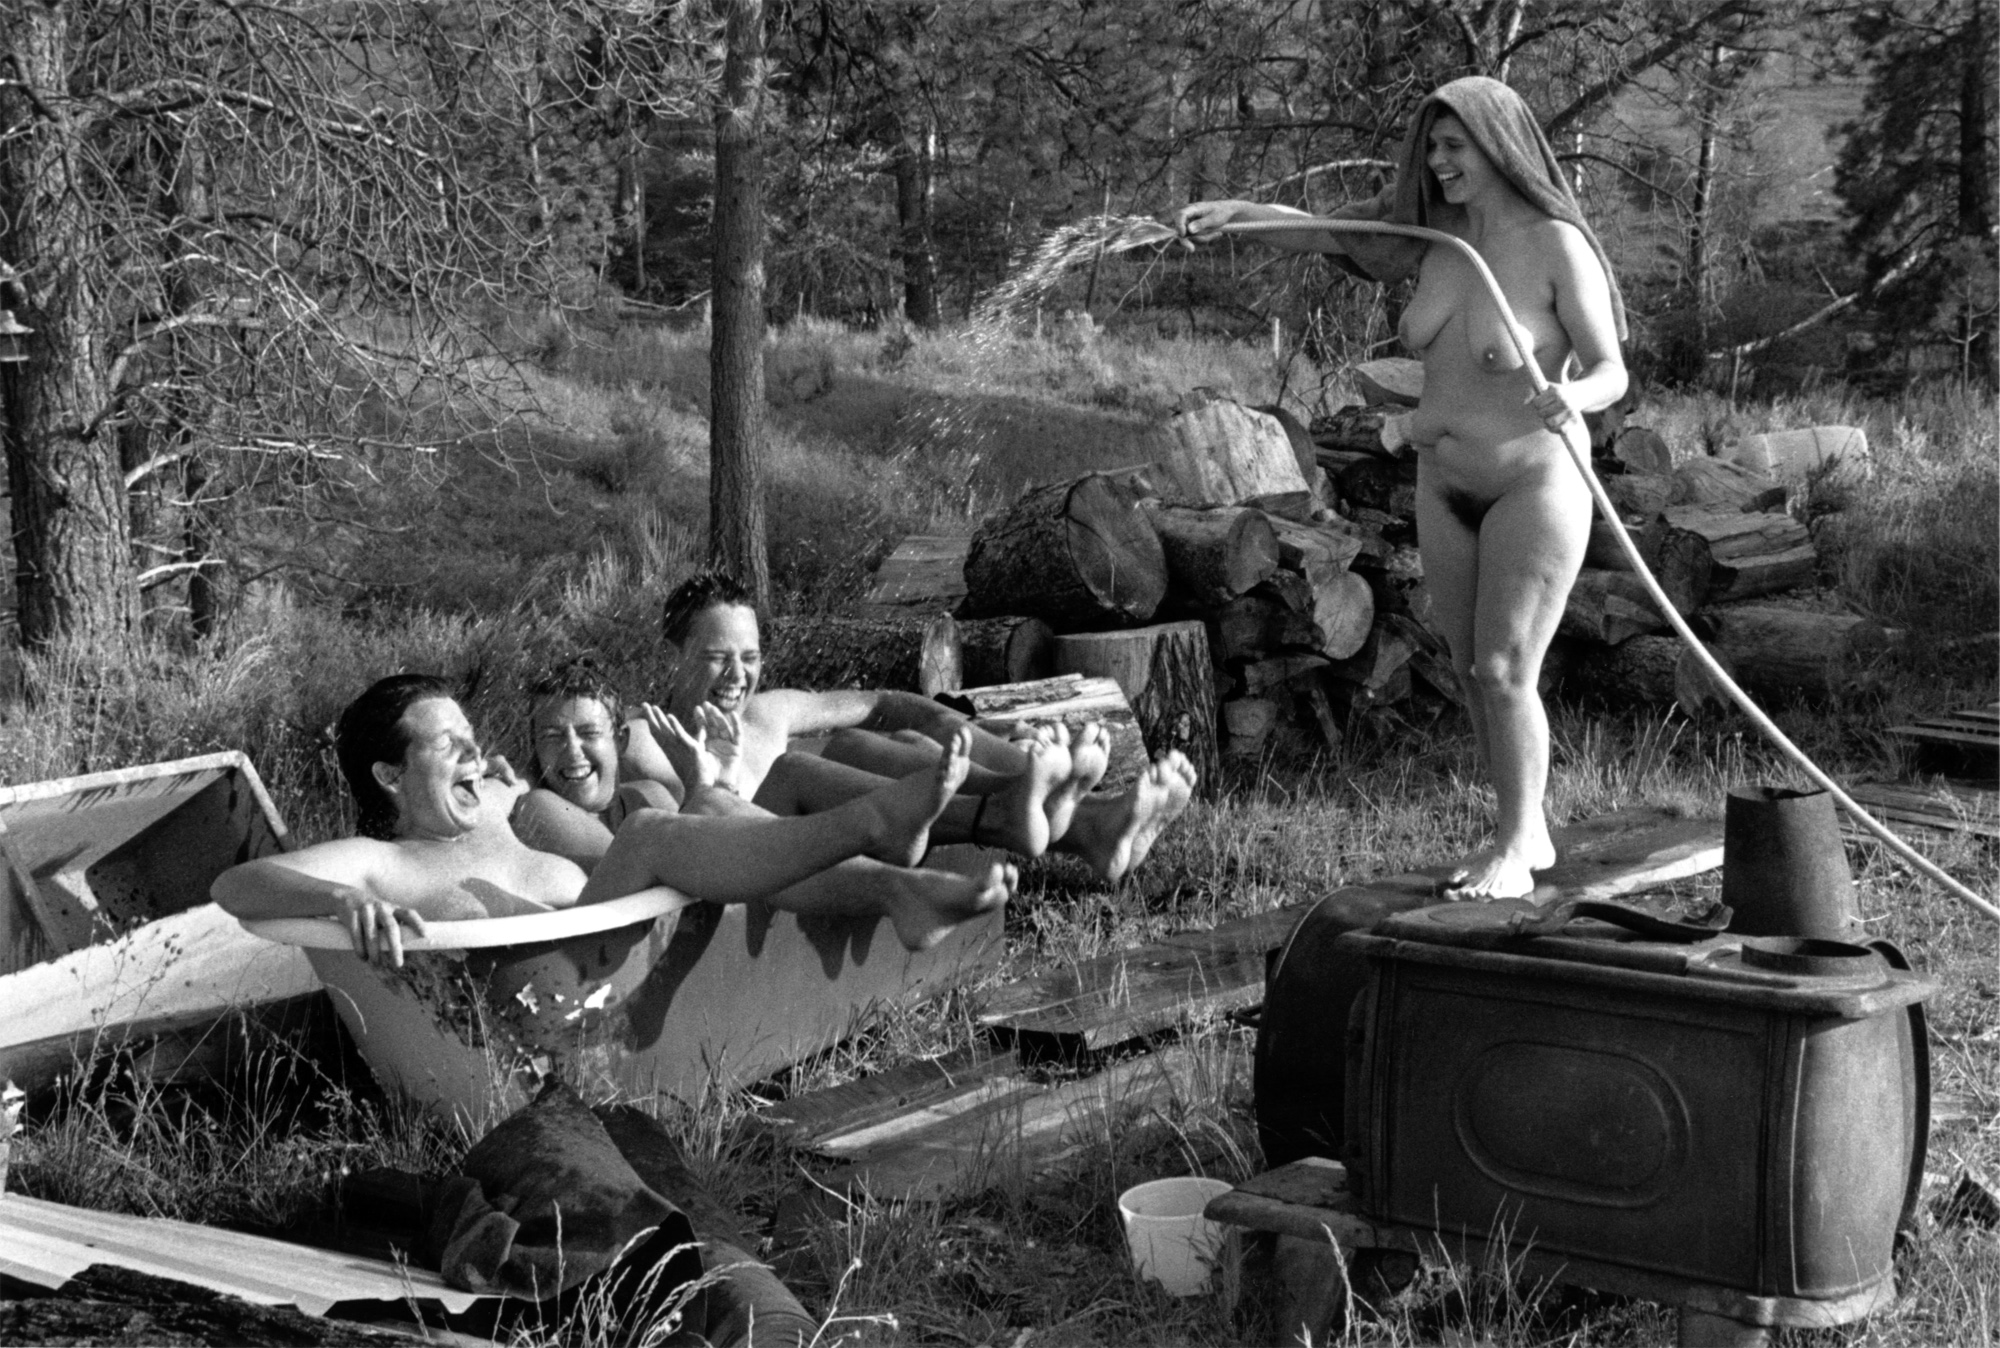 Friends cooling off in the Bitteroot Valley, 1987, Stevensville, MT